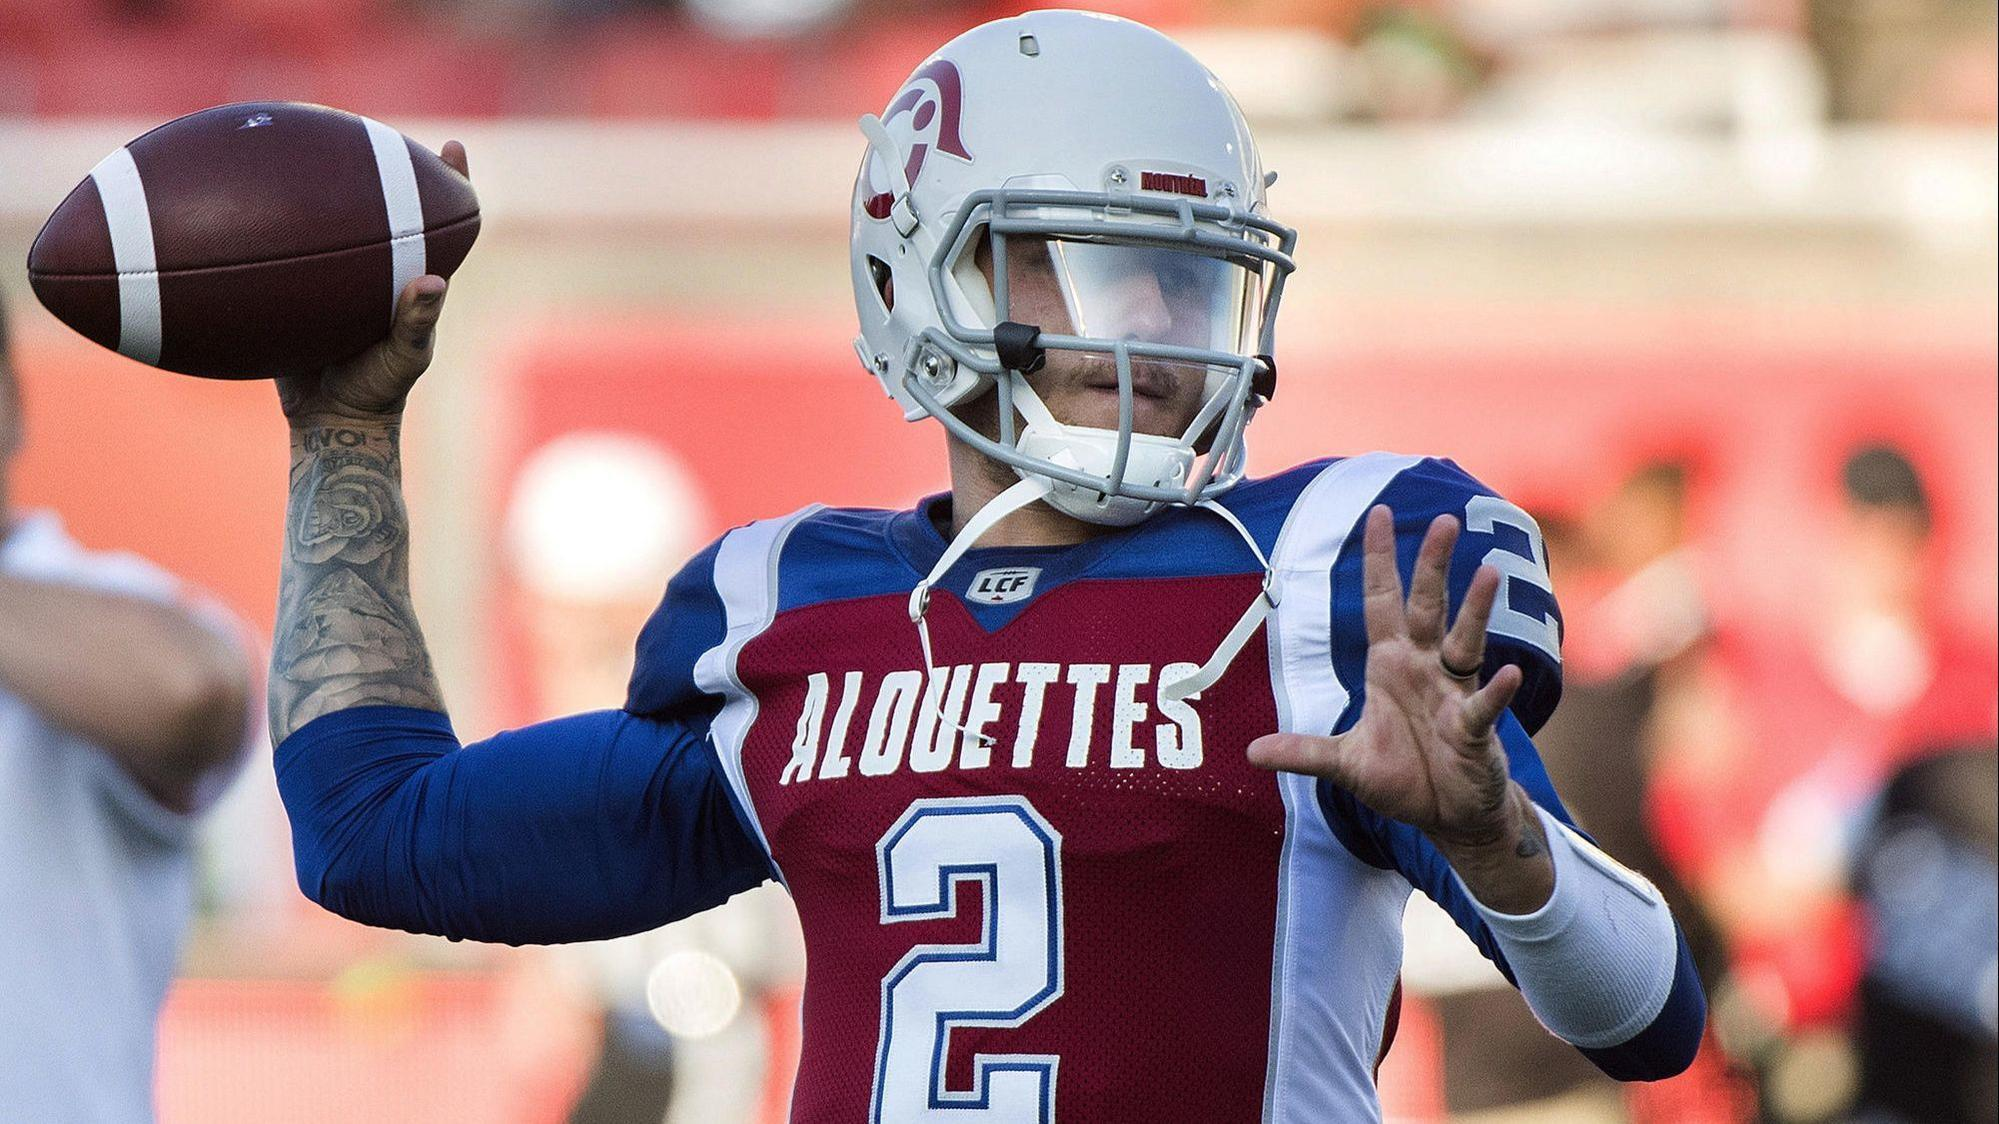 'Johnny B Gone': Manziel out of the CFL